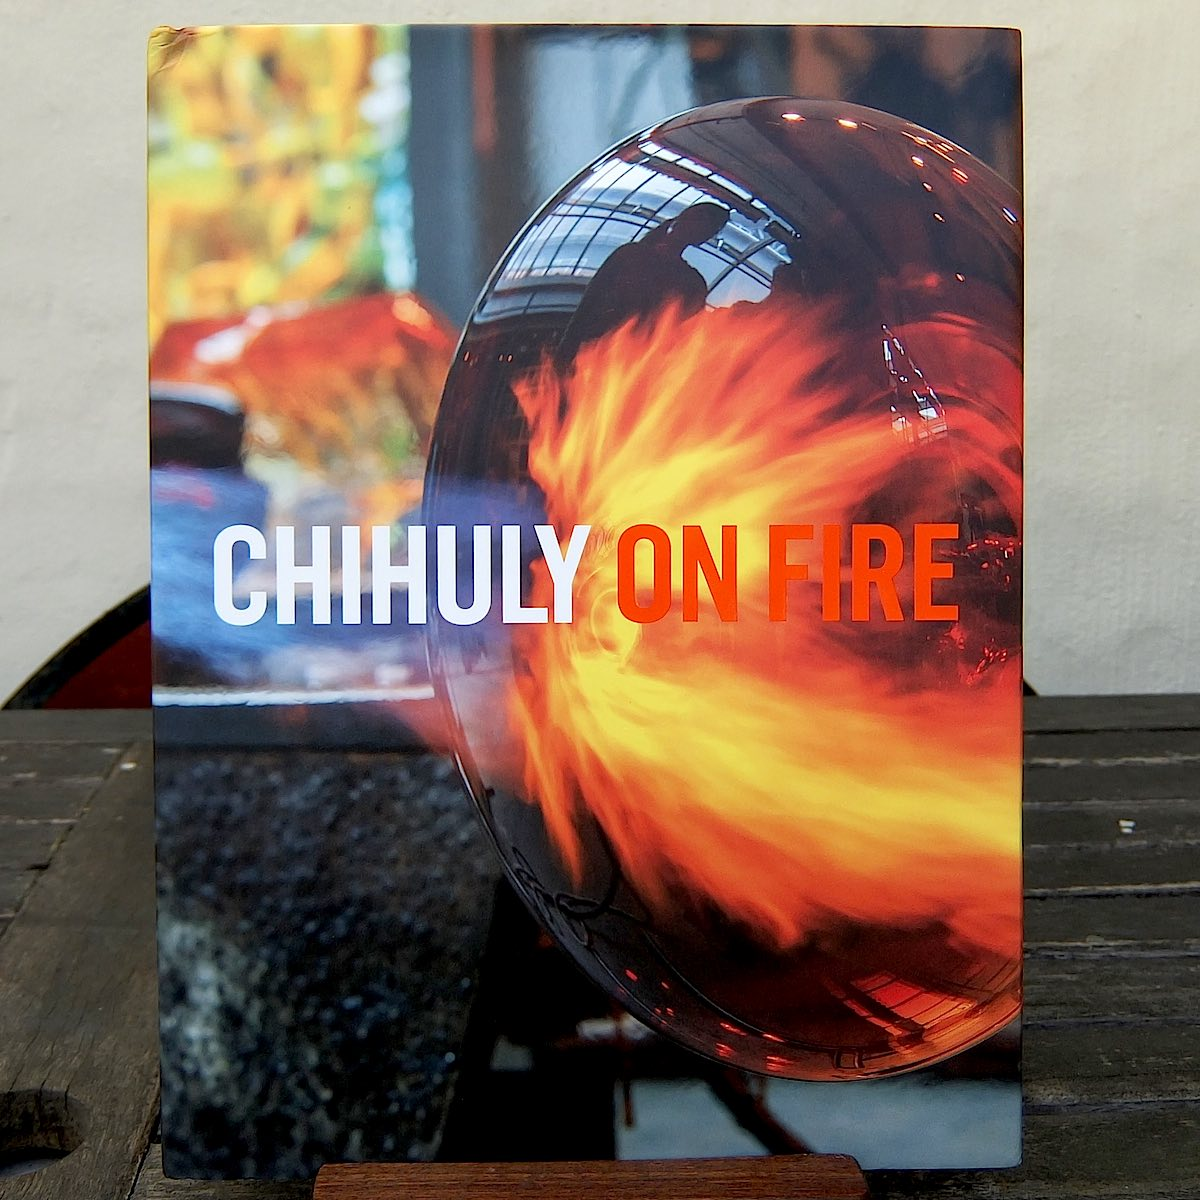 Glass artist Dale Chihuly plays with fire and the audacity of beauty